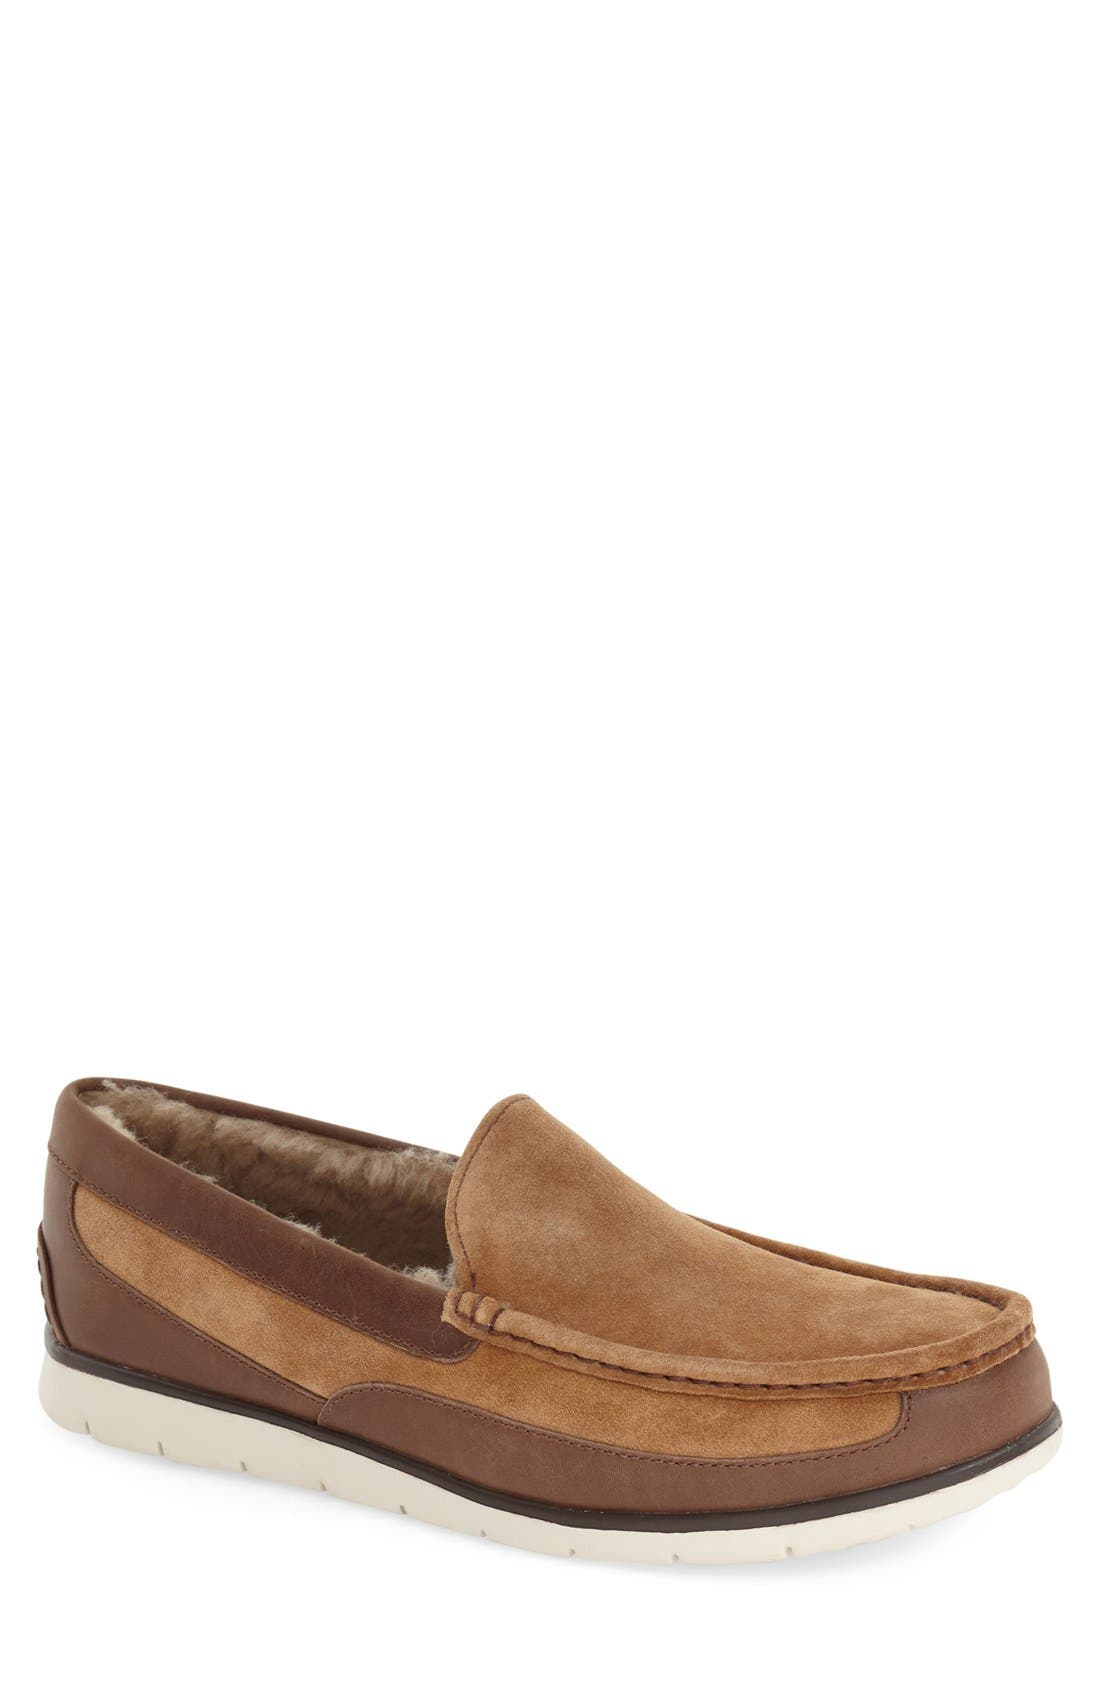 Fascot Indoor/Outdoor Slipper,                             Main thumbnail 1, color,                             Chestnut